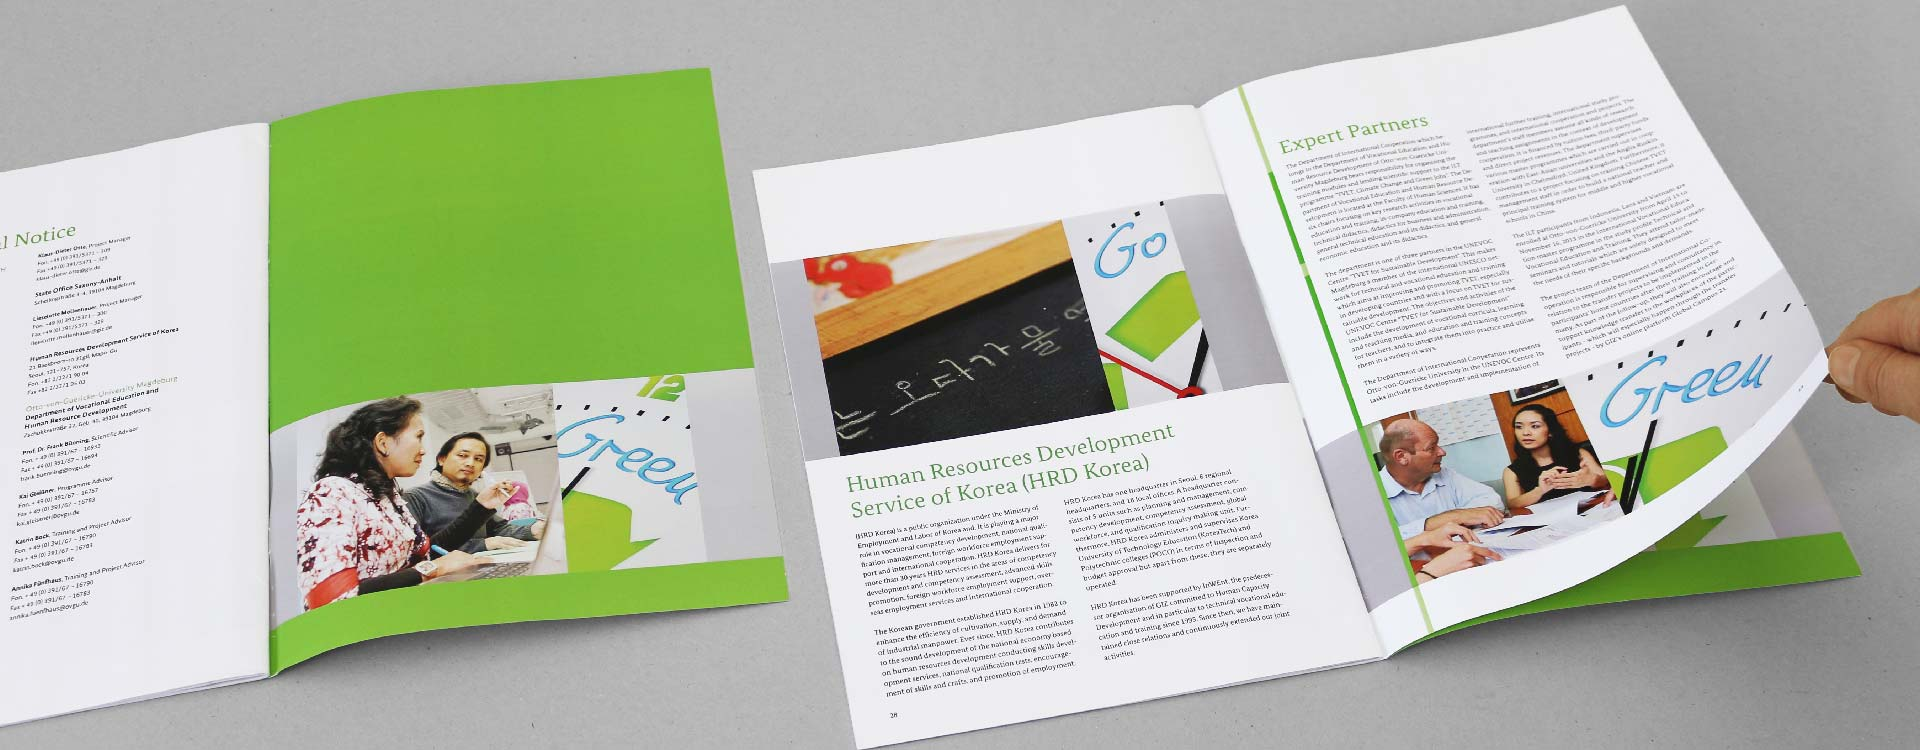 Inside pages of the brochure Technical Vocational Education and Training, Climate Change and Green Jobs of the GIZ Magdeburg; Design: Kattrin Richter | Graphic Design Studio